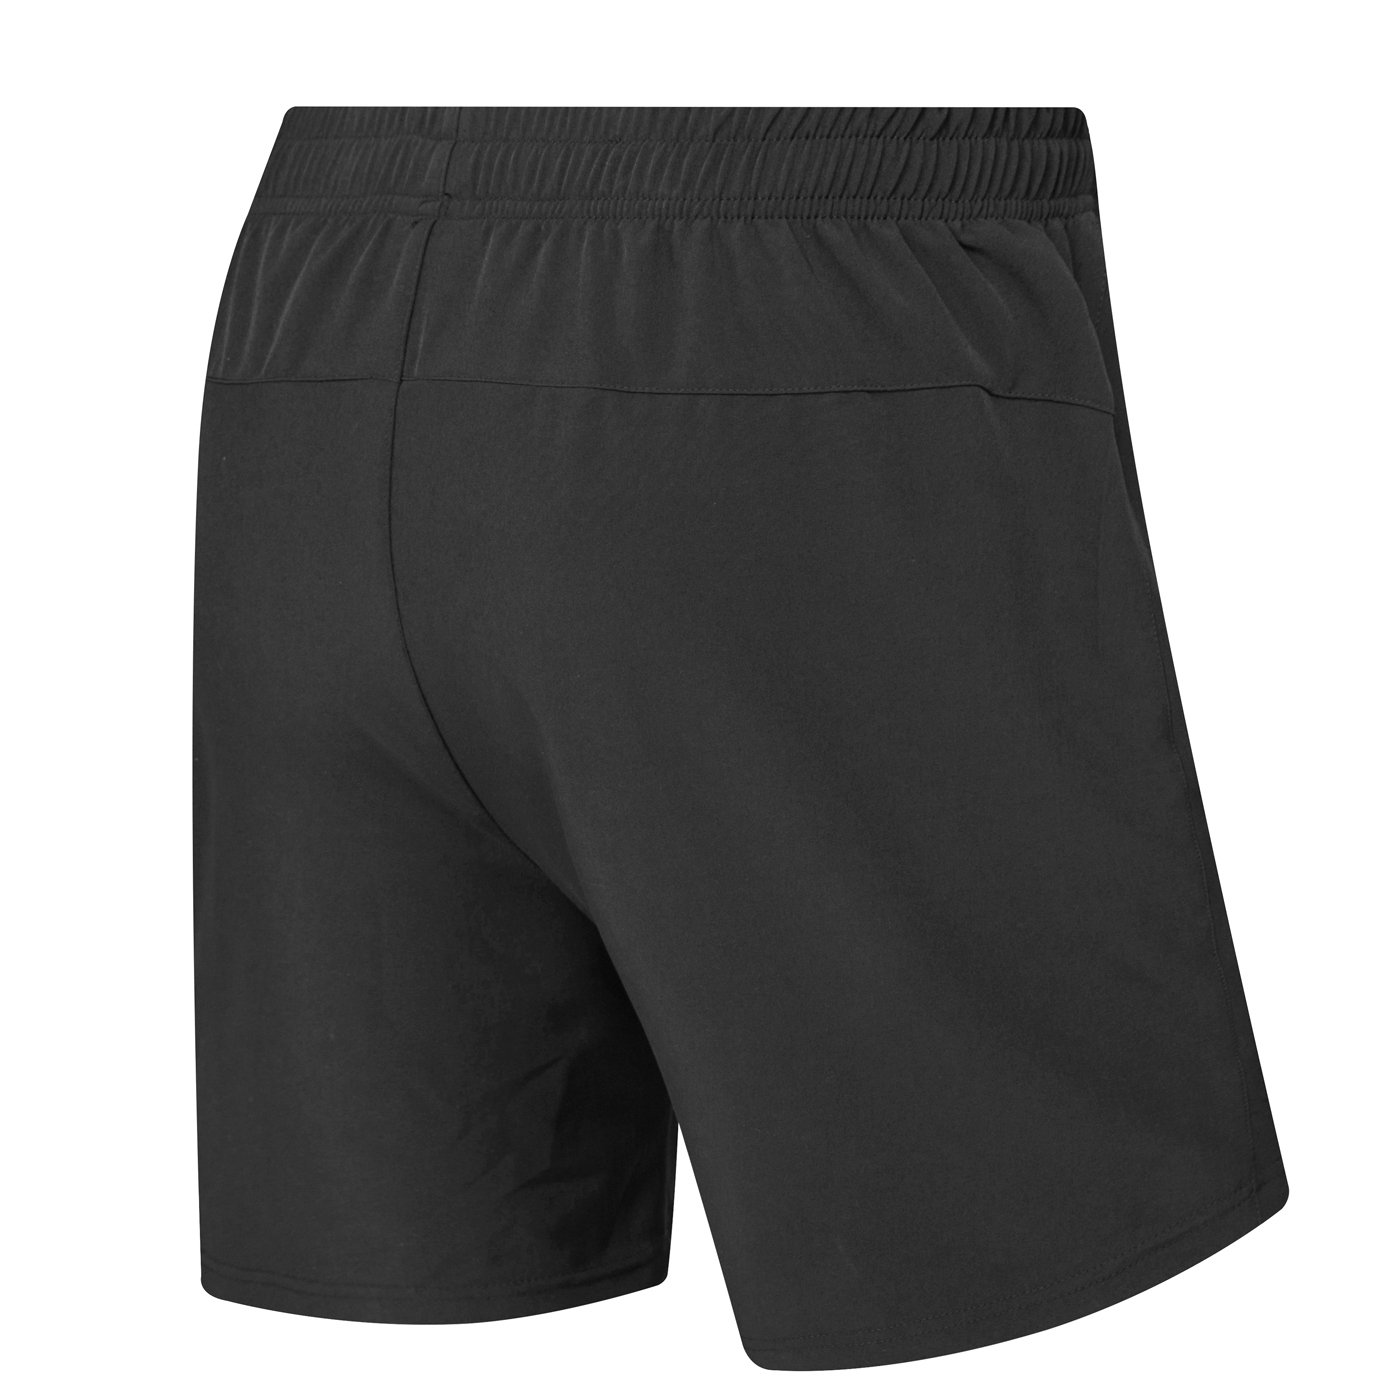 donhobo Mens Quick Dry Sports Shorts Running GYM Training Reflective Shorts With Zip Pockets